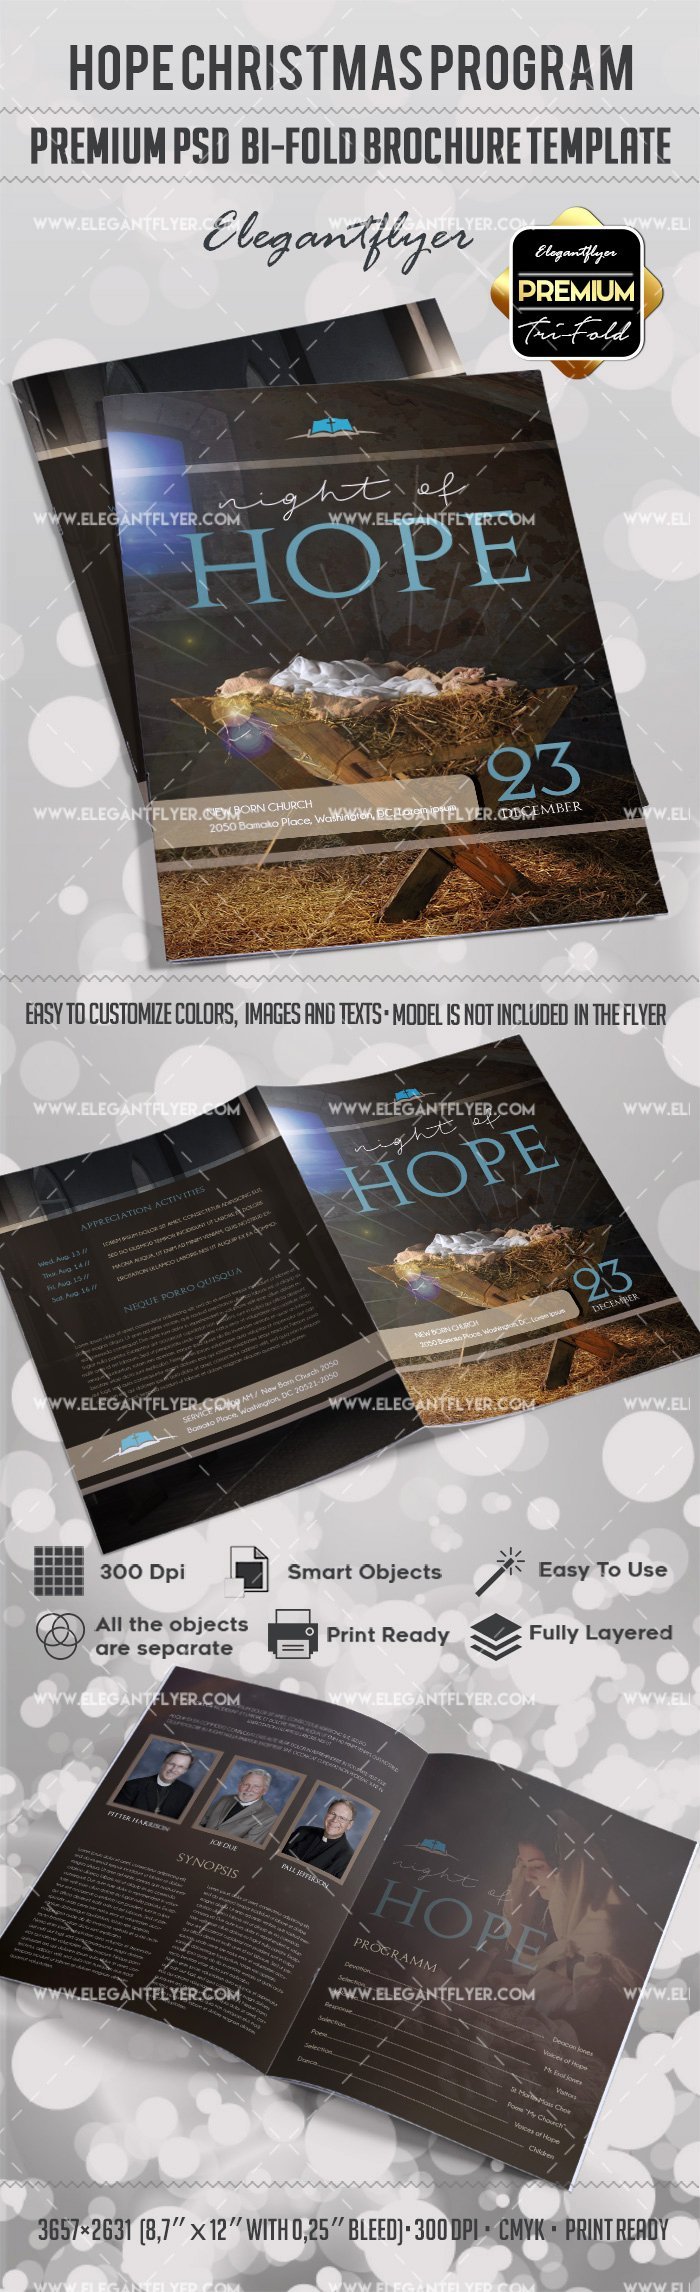 hope christmas program premium bi fold psd brochure template 2